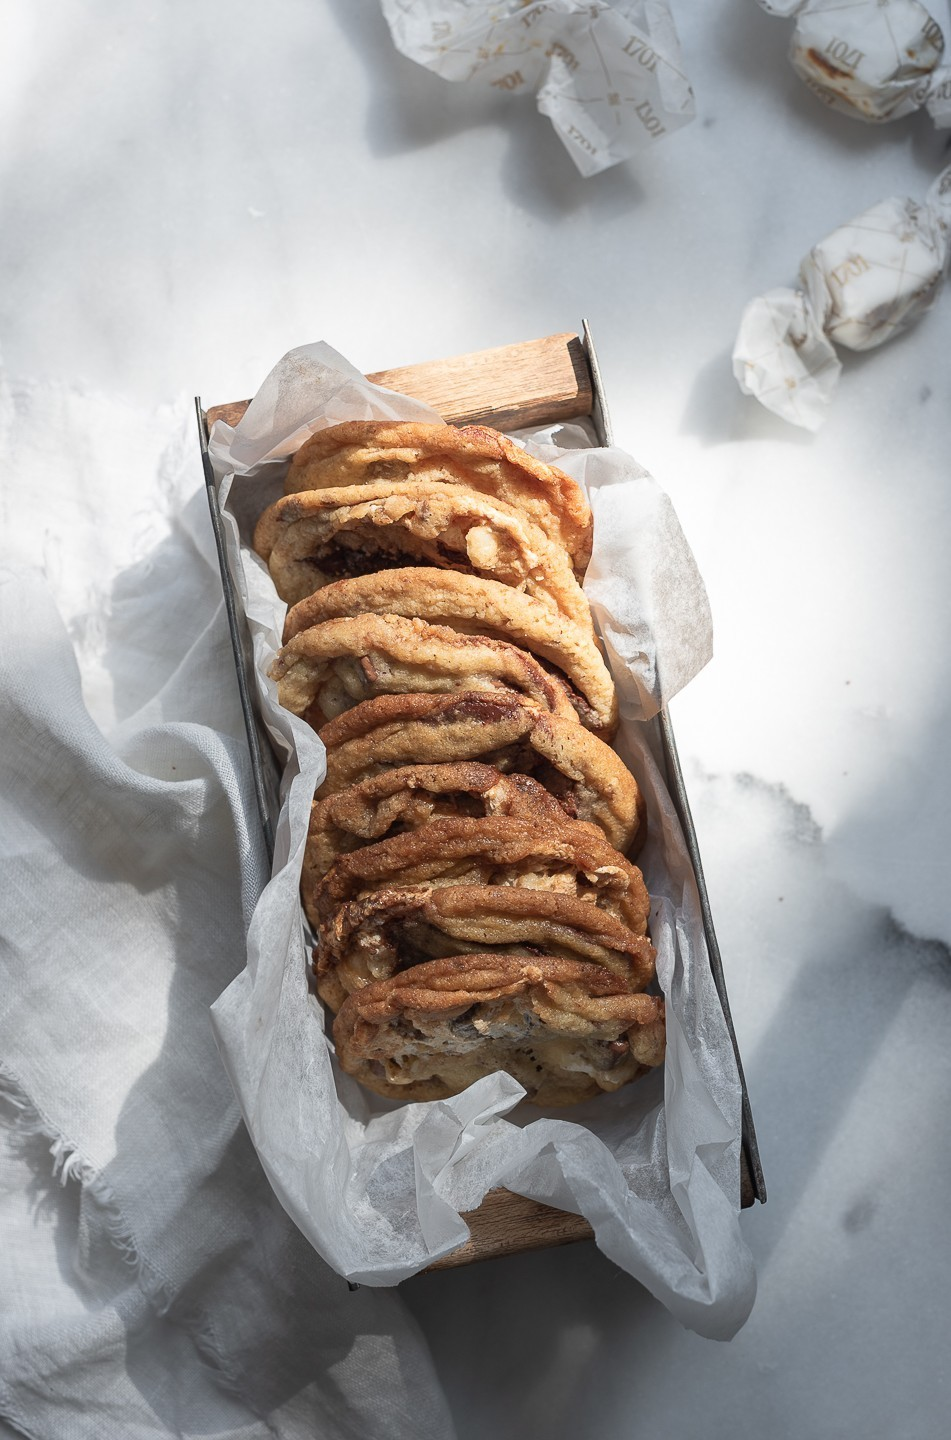 Chocolate chip nougat cookies